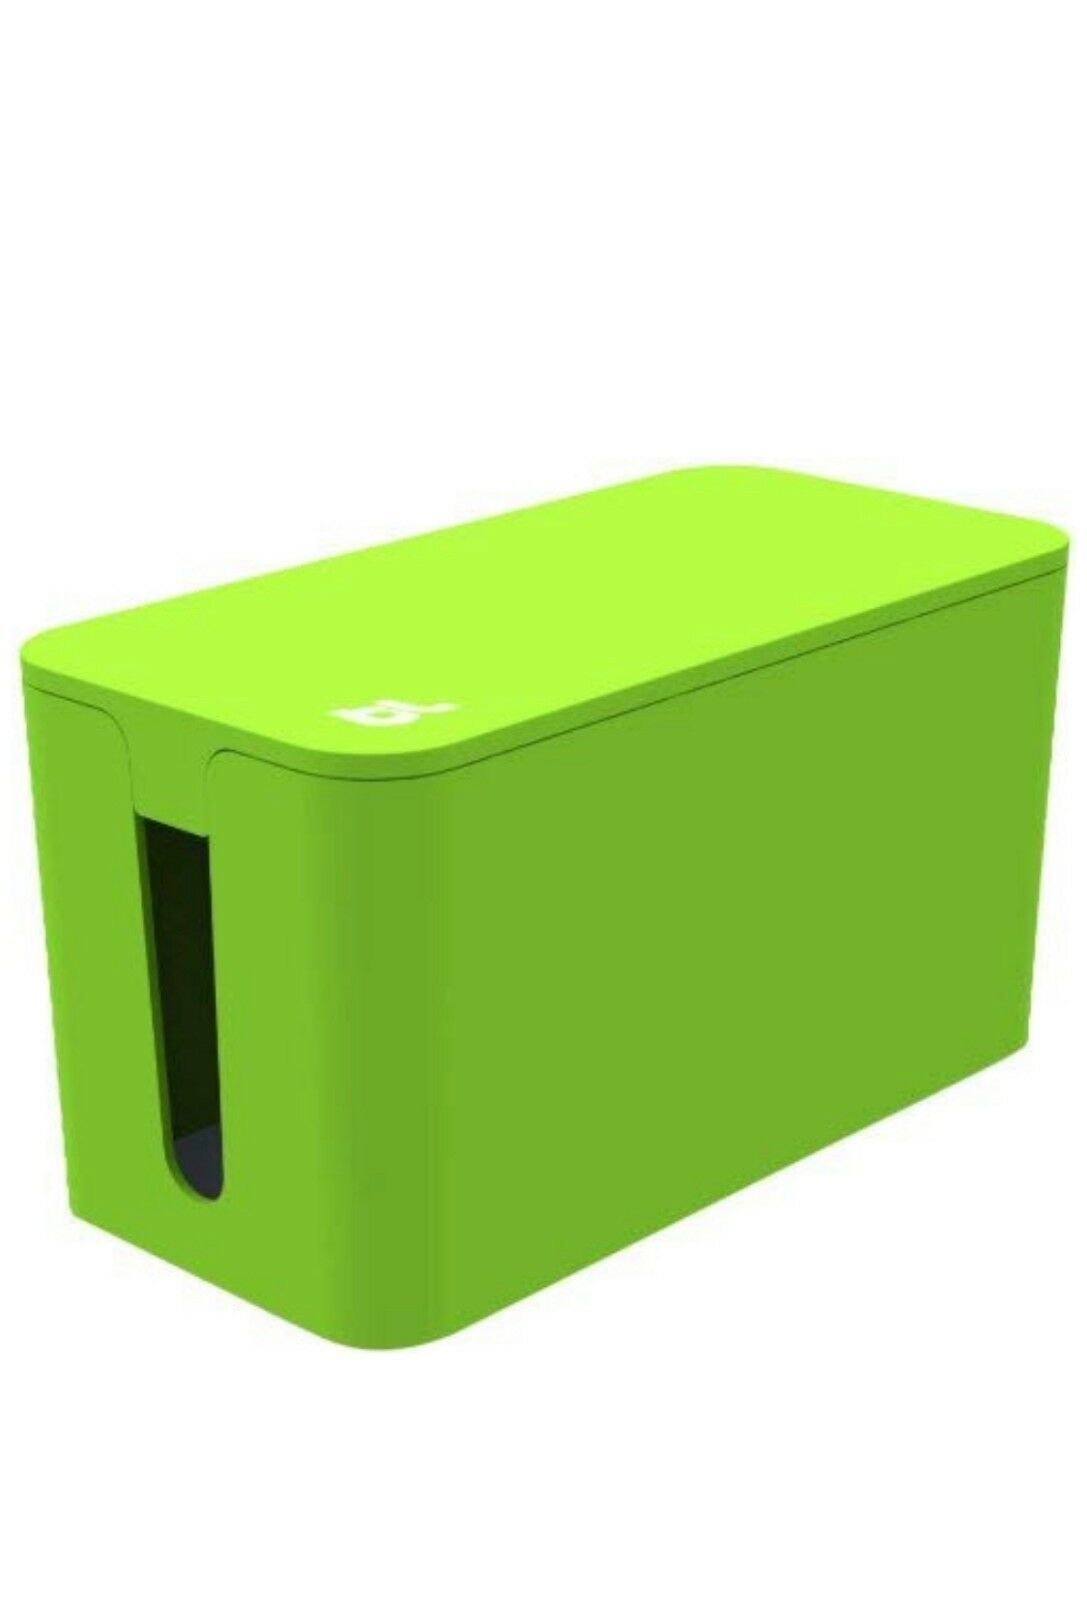 Bluelounge - Cable Box Mini (Lime Green) - UNOPENED